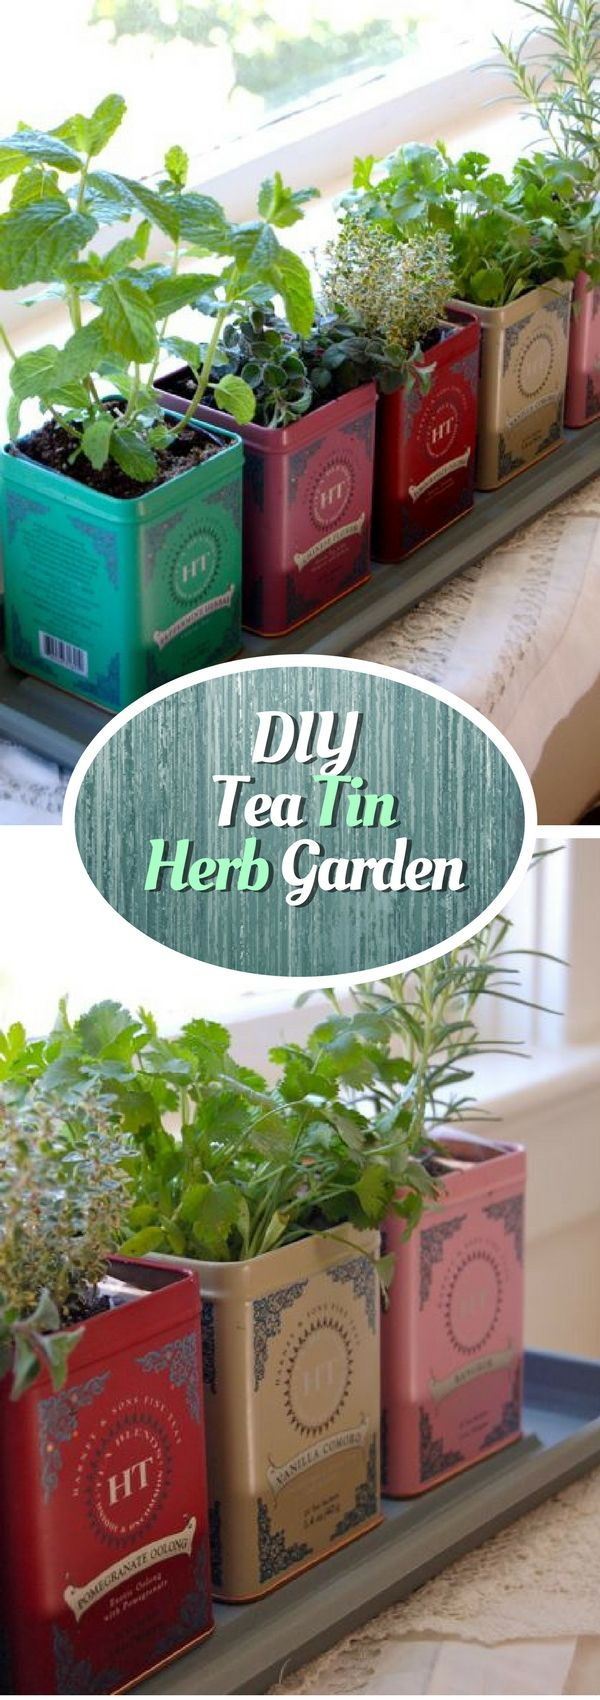 Check out how to make a DIY herb garden form tea tin cans @istandarddesign